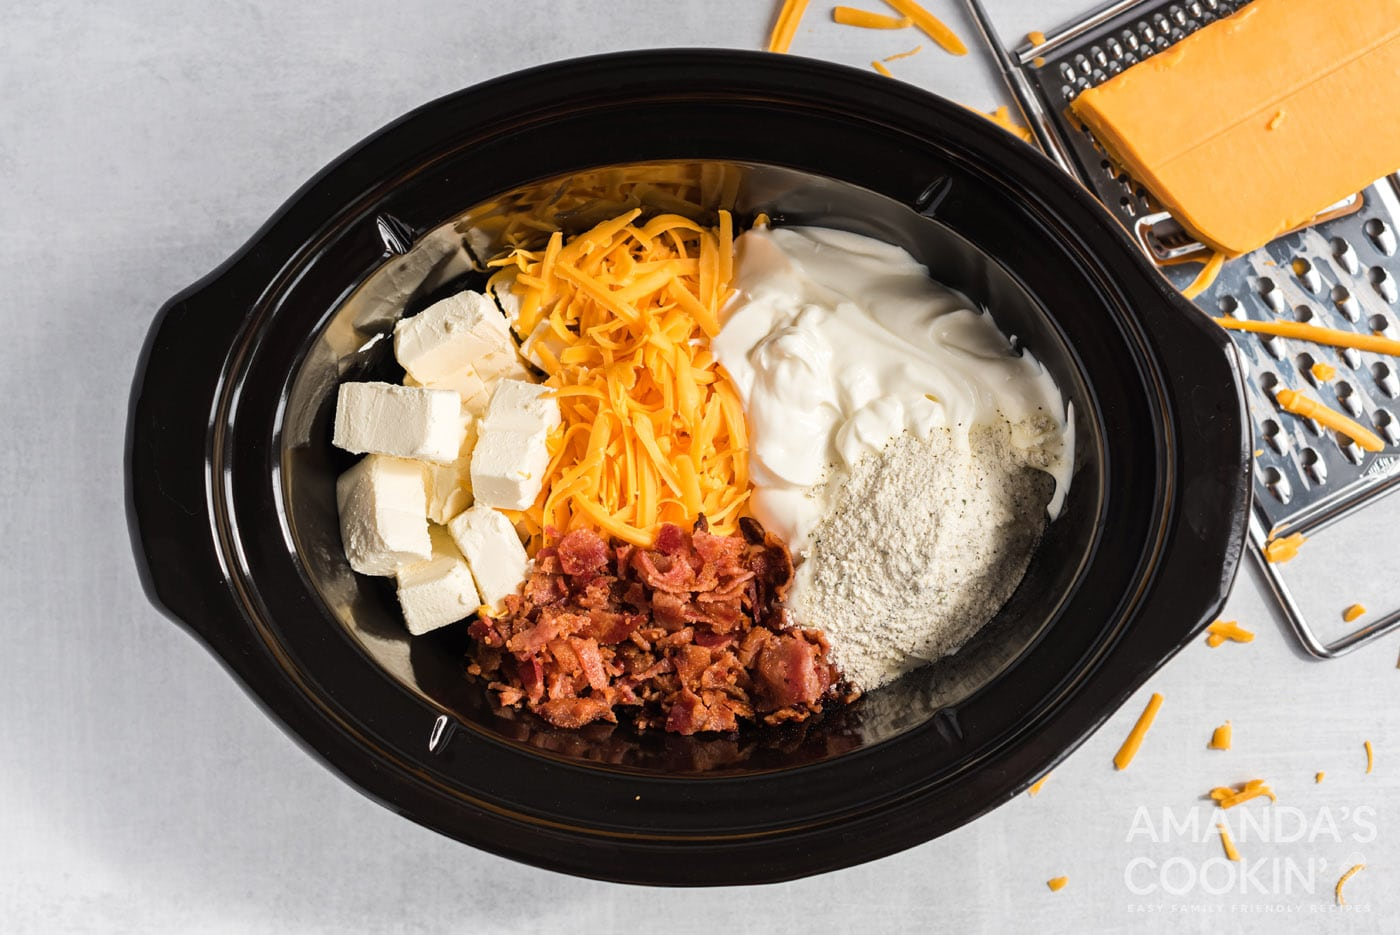 ingredients for cheese dip in the crockpot